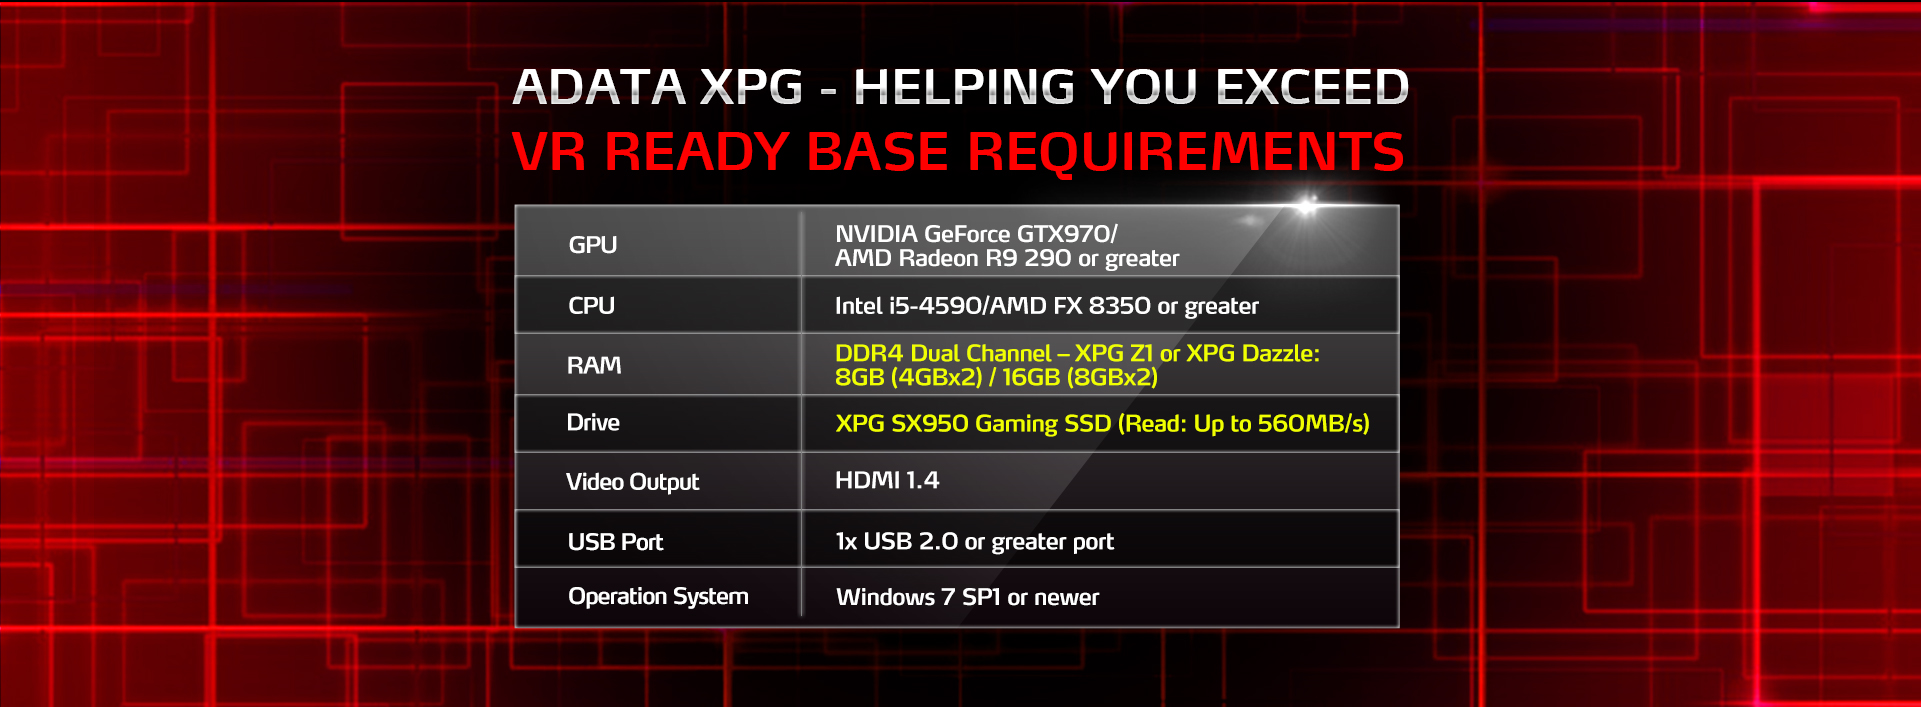 ADATA-XPG-VR-Ready-Series-Base-Requirements